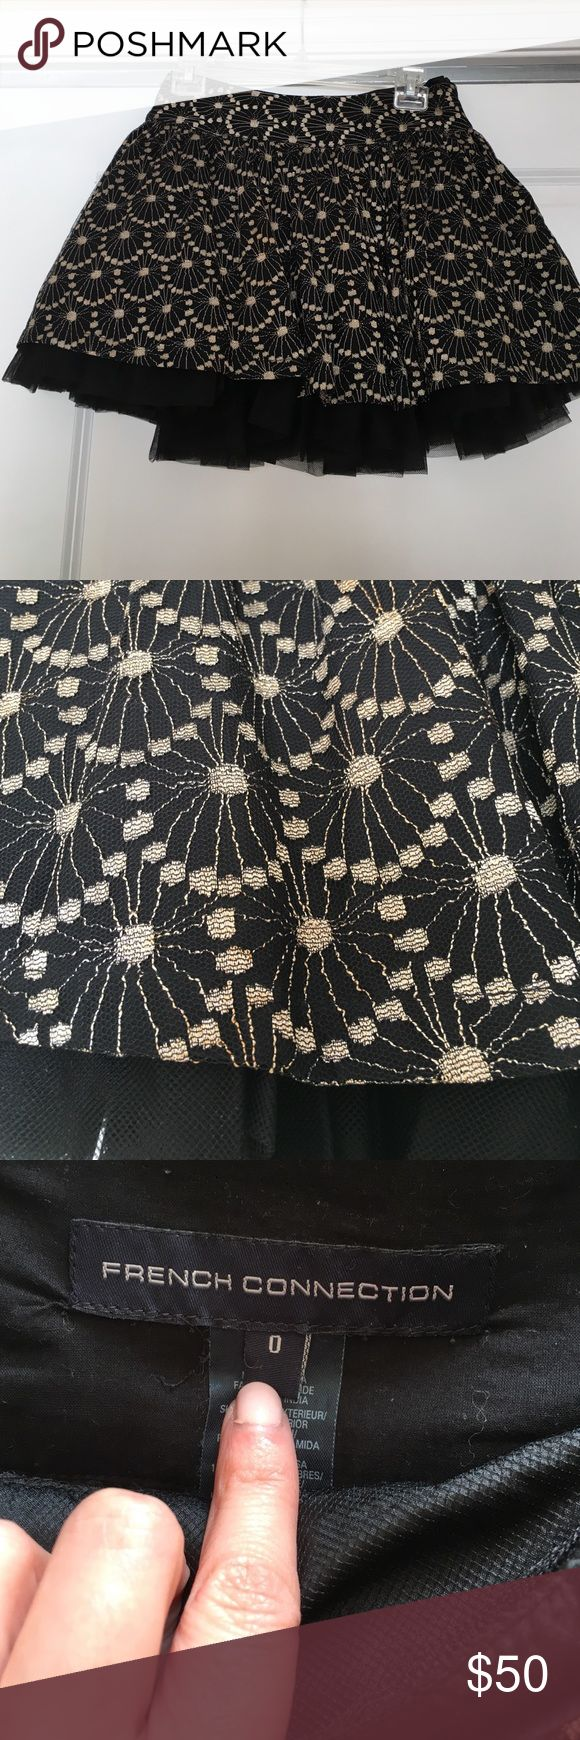 French connection skirt Worn a hand full of times, gold/black, big tulle under layer that attaches, so fun! Excellent condition French Connection Skirts Mini